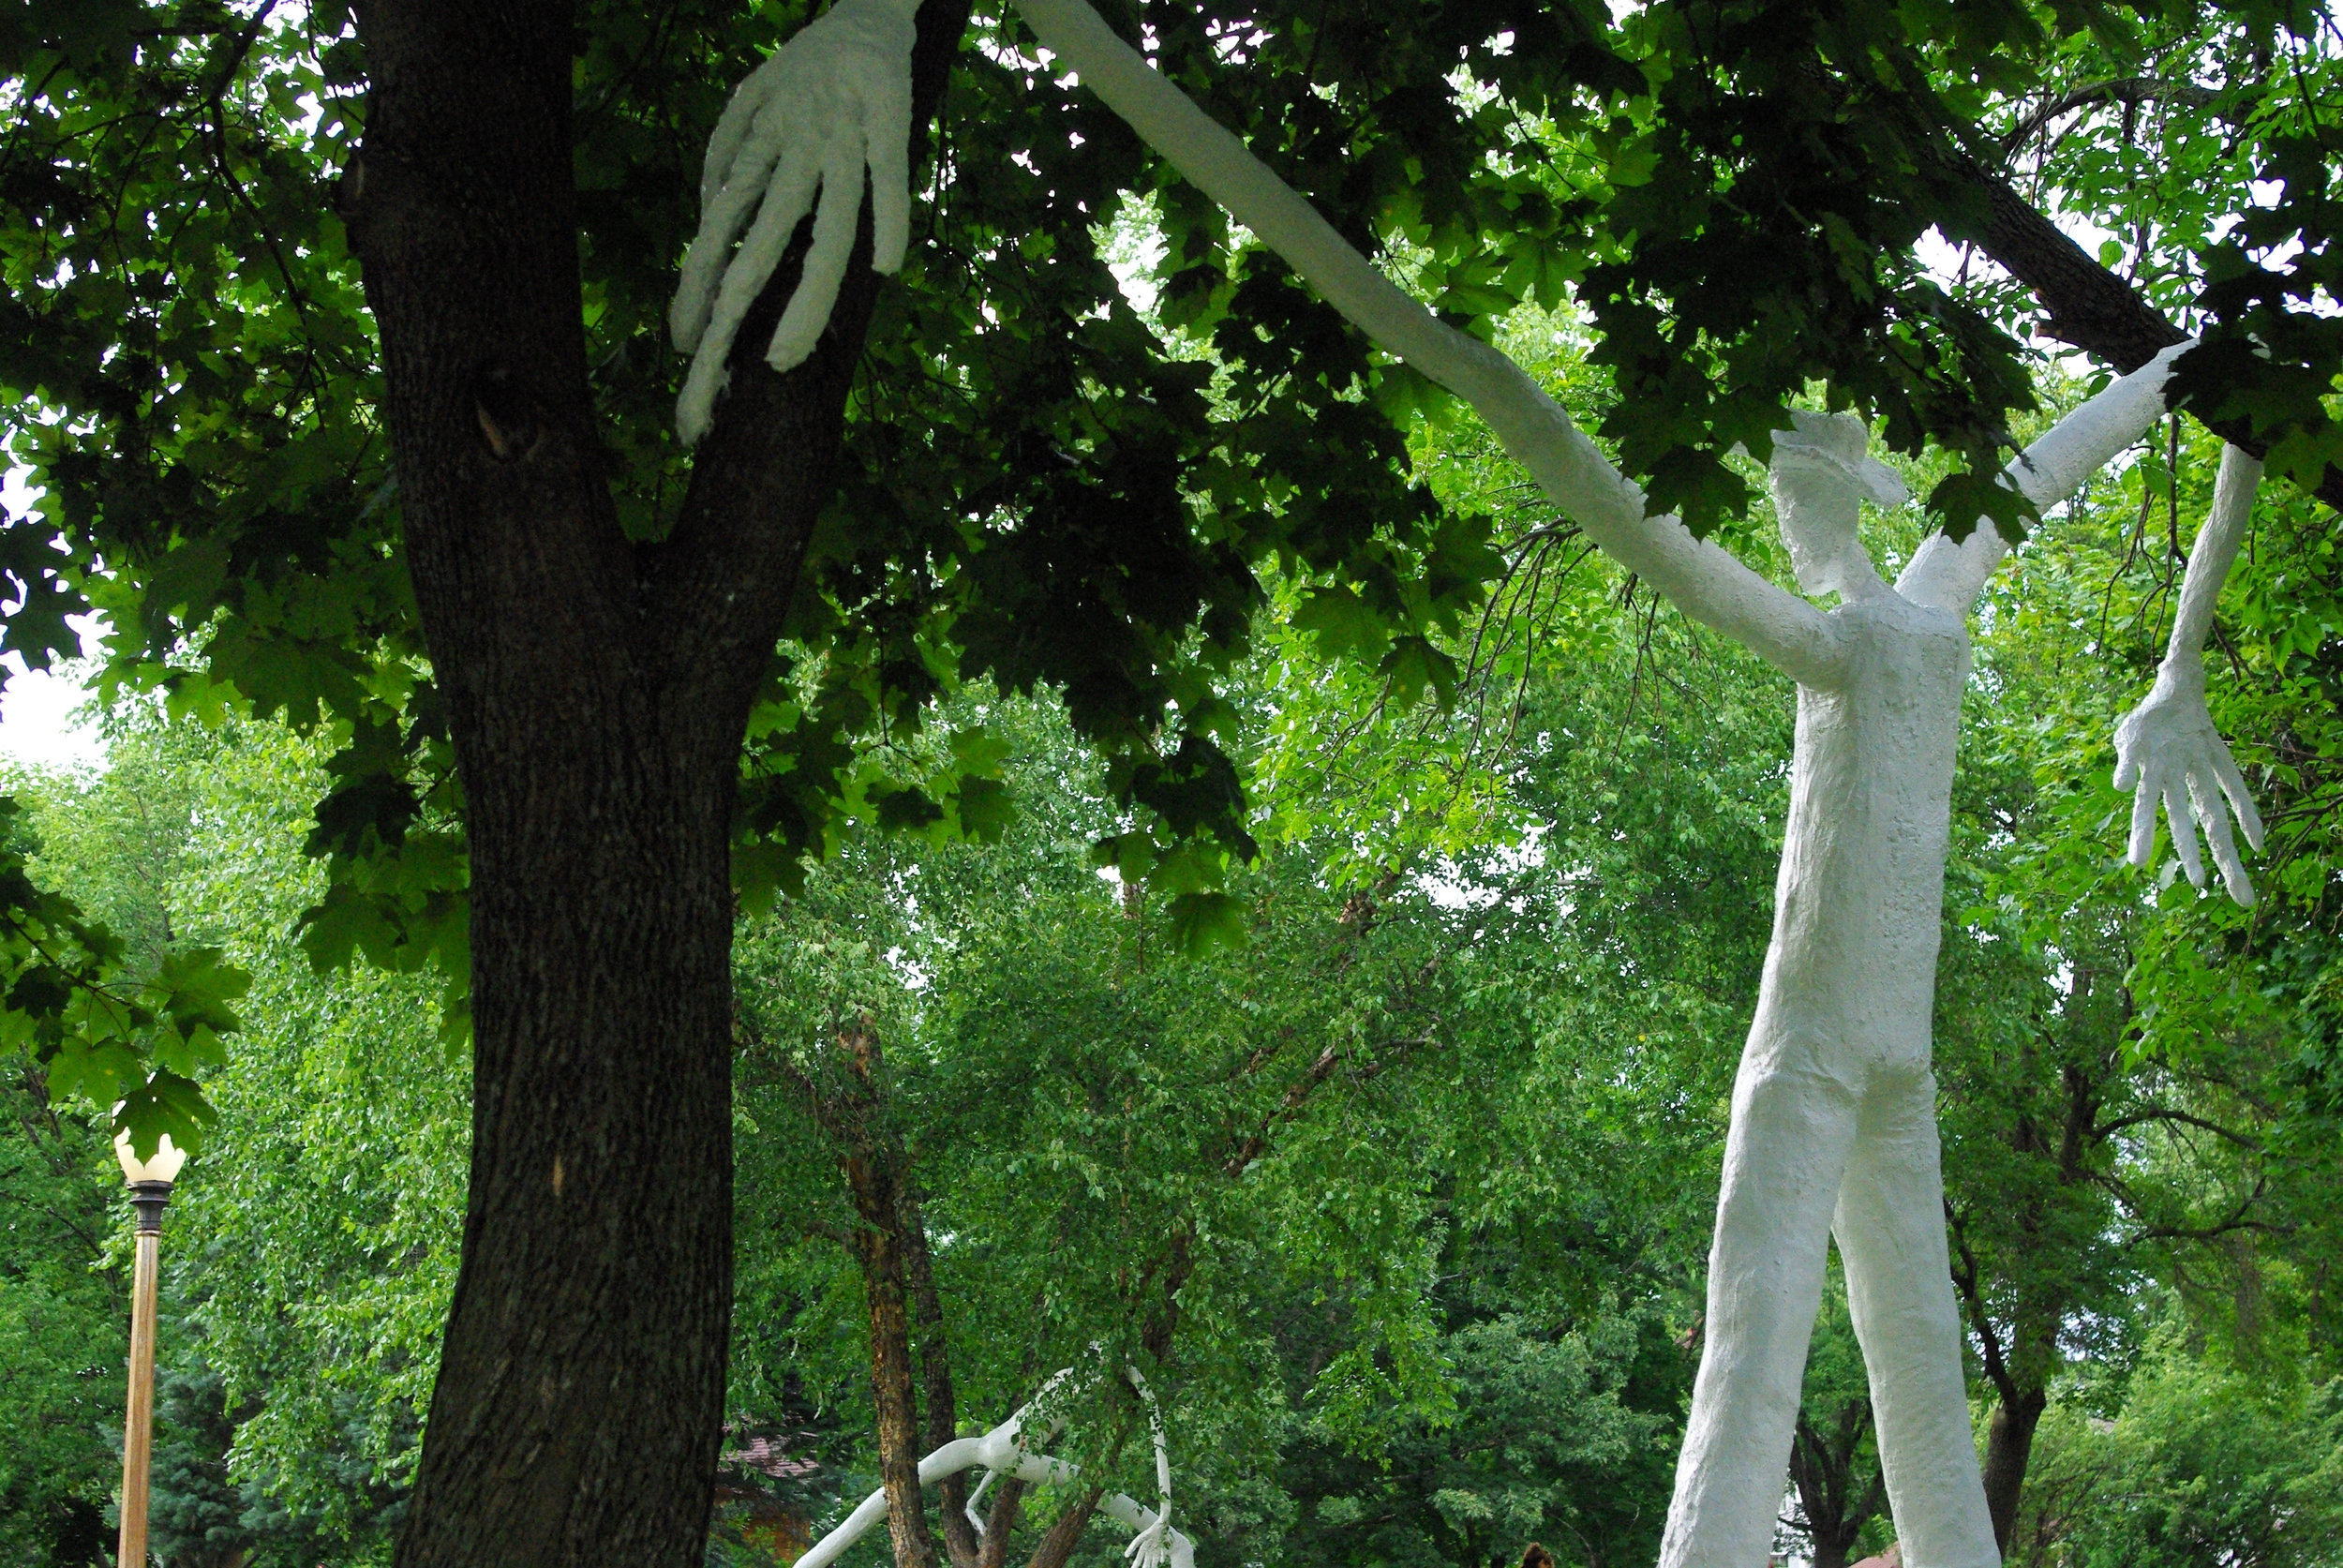 July-October 2016.  Cement, rebar, chicken wire,muslin, plywood, & latex paint.  Five sculptures of varying heights (12-18ft tall).  Public art commission made possible by Reedsburg ArtsLink.